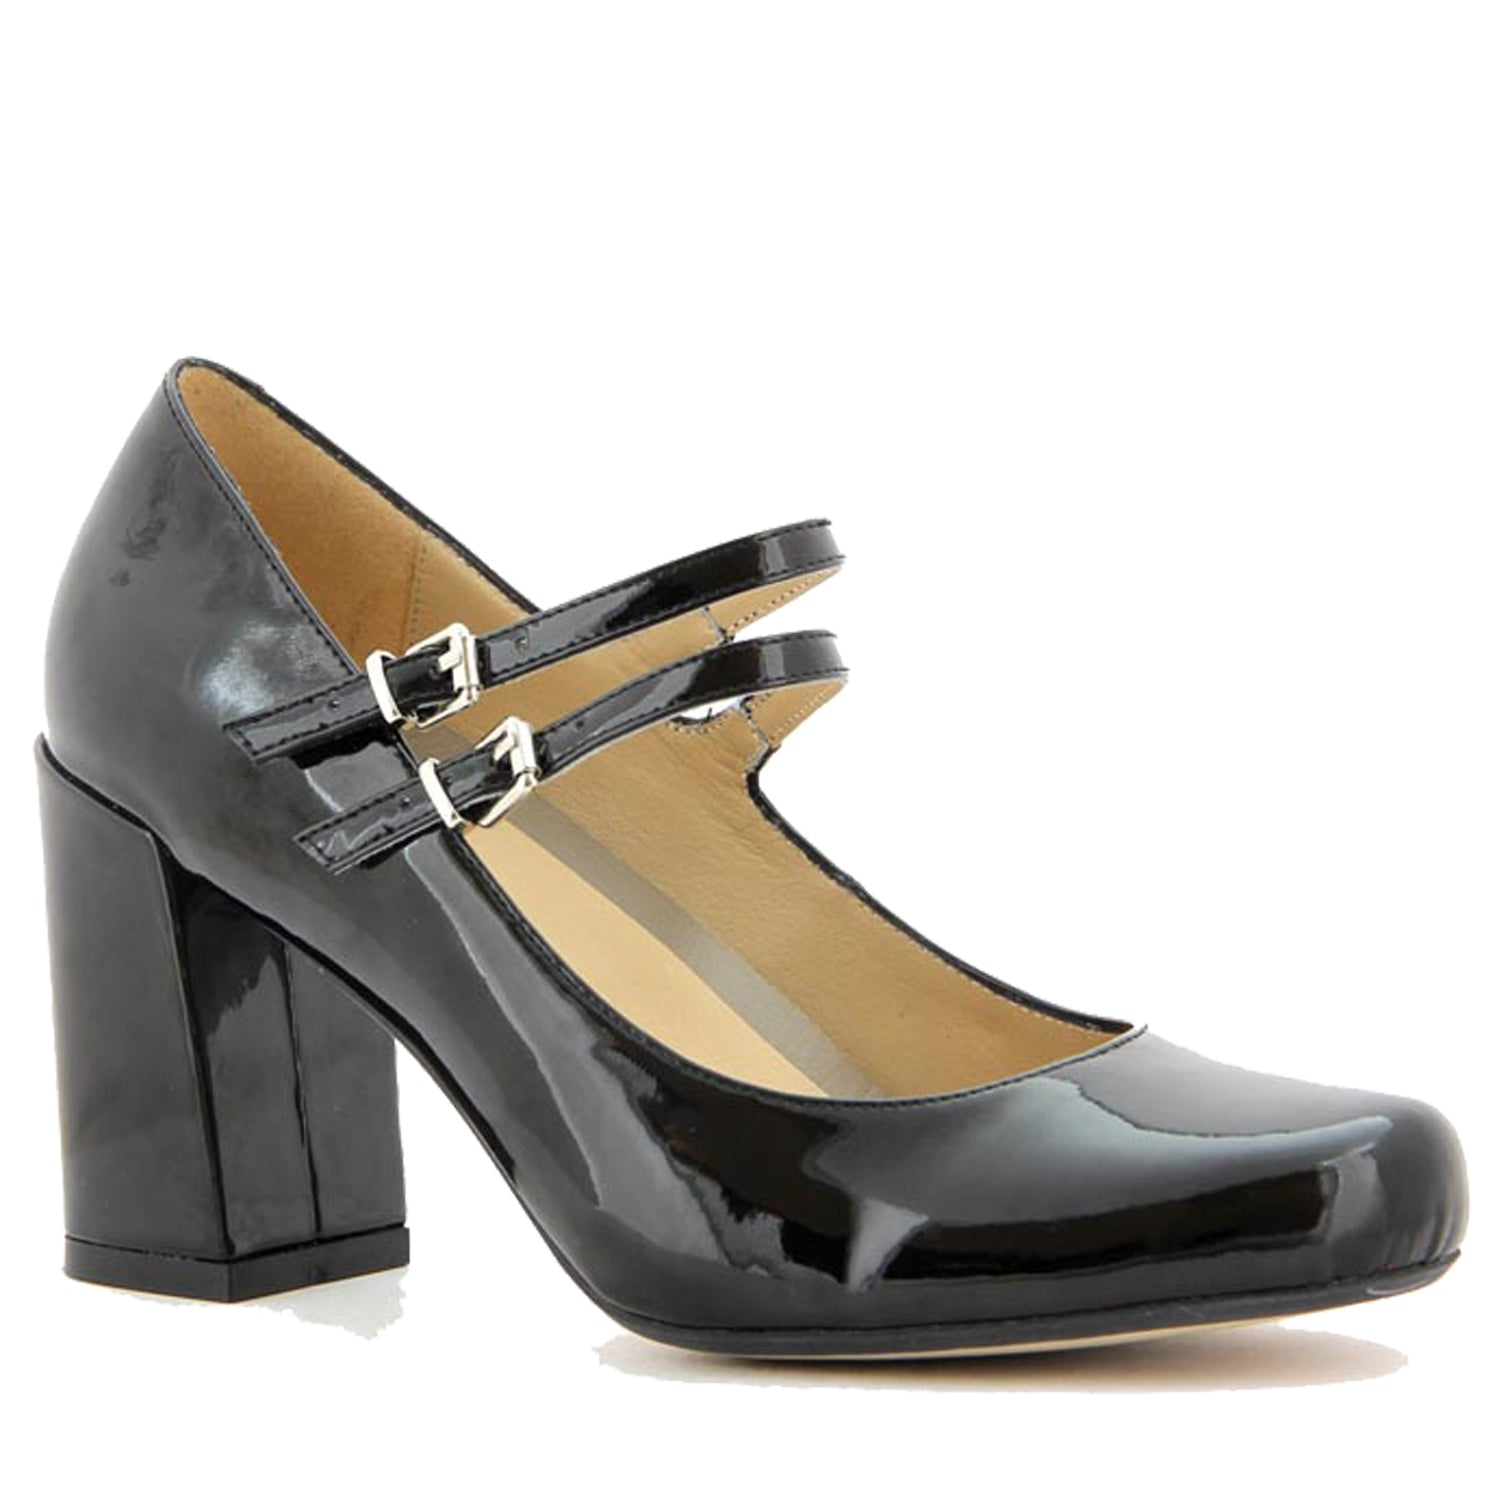 97afd159a363 Shop Heels Online - Ian s Shoes for Women